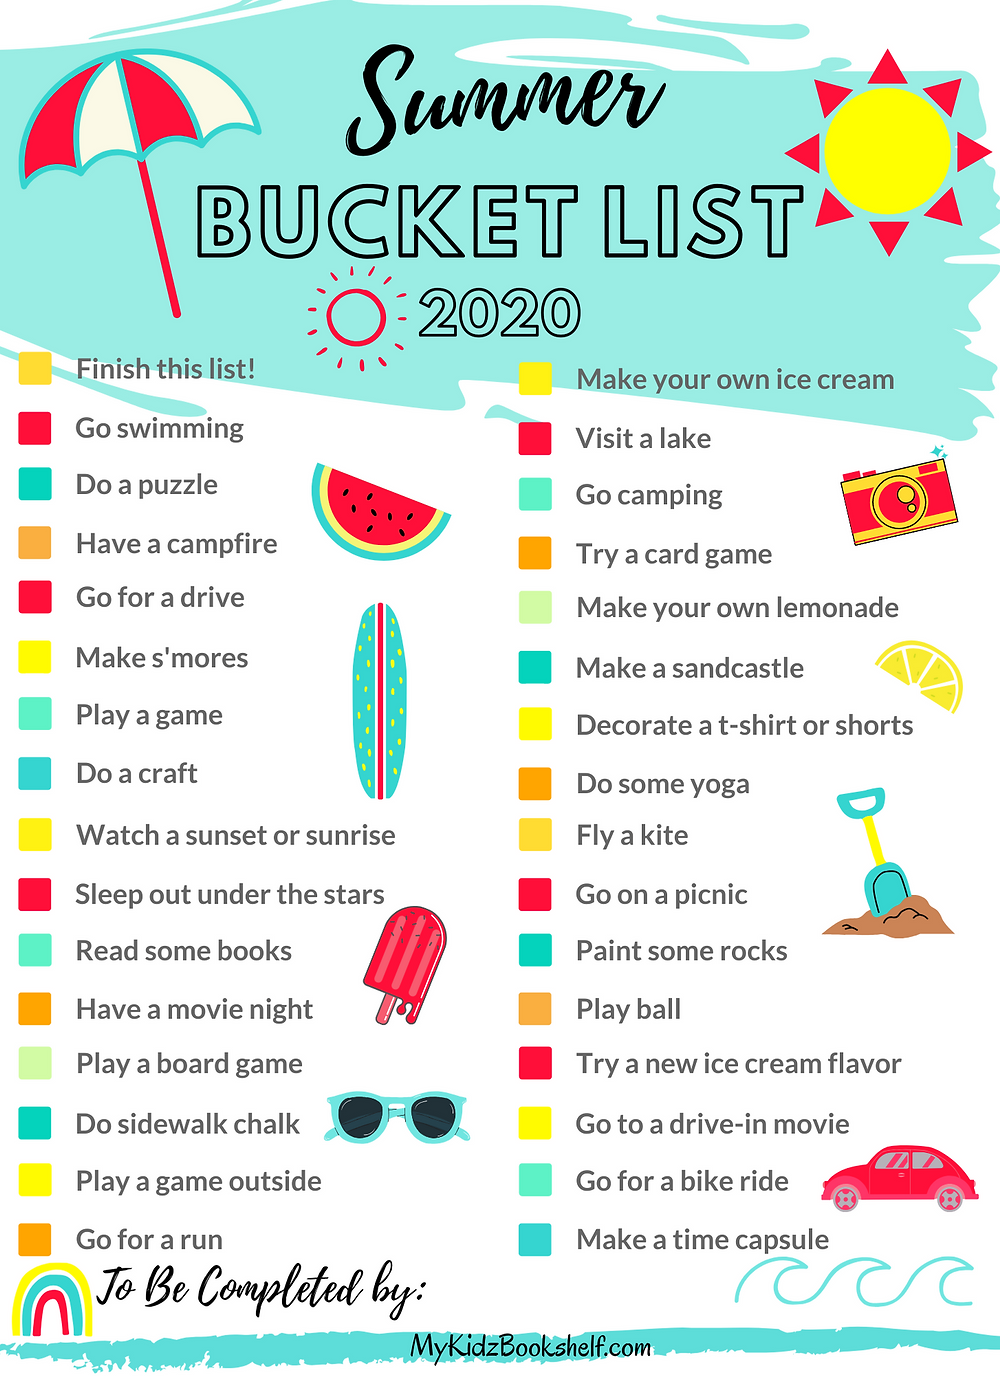 Summer Bucket List 2020 free printable with sun, umbrella, watermelon and other fun summery icons.